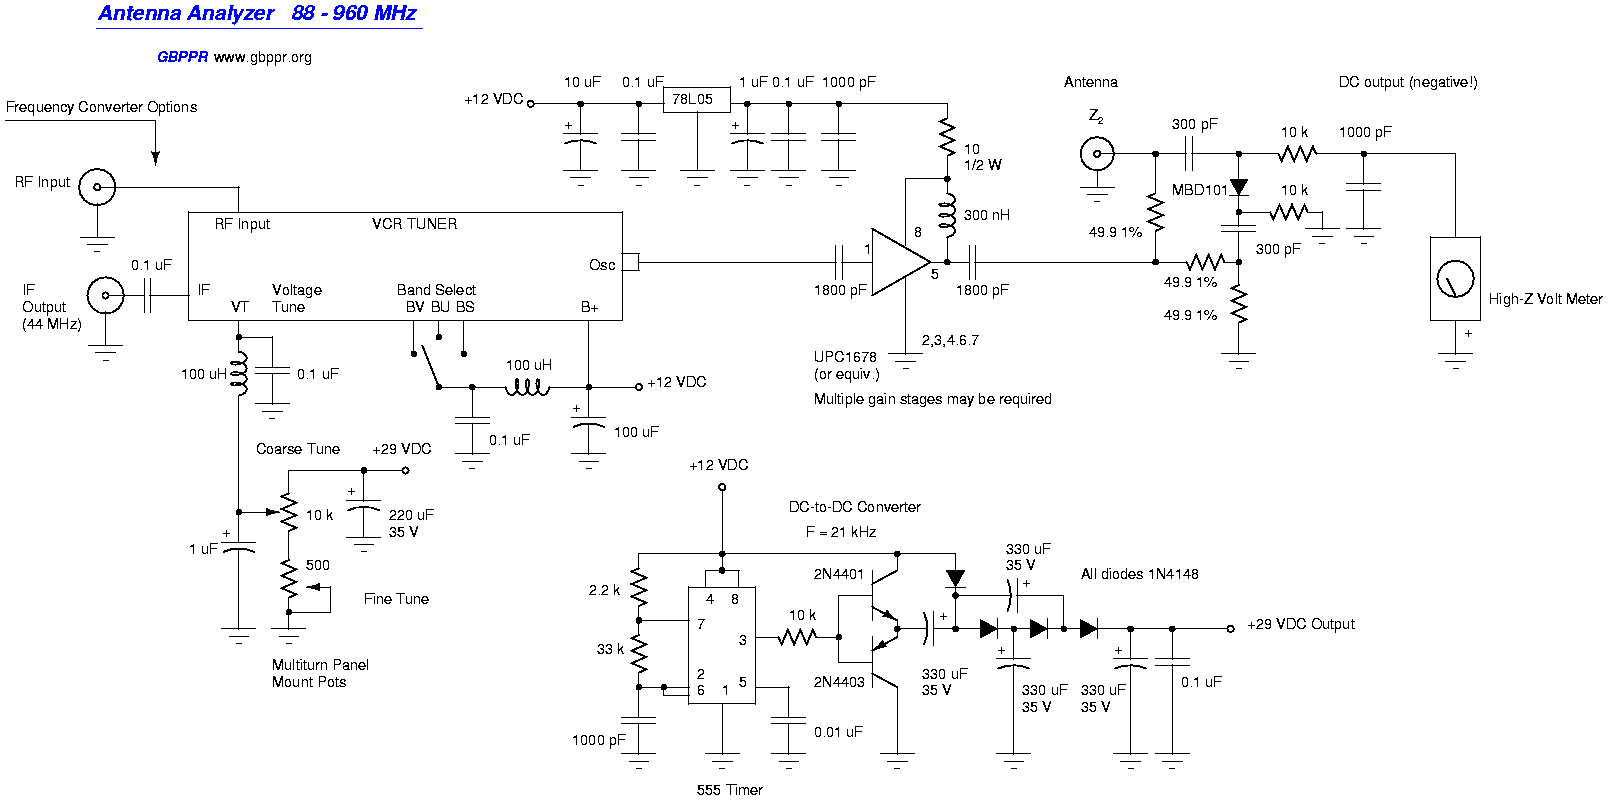 Ham Radio Projects By Csaba Yo5ofh Simple Digital Voltmeter Dvm Using Pic12f675 Schematic With Icl7107 Dvmzip Antenna Analyzer 88 960mhz